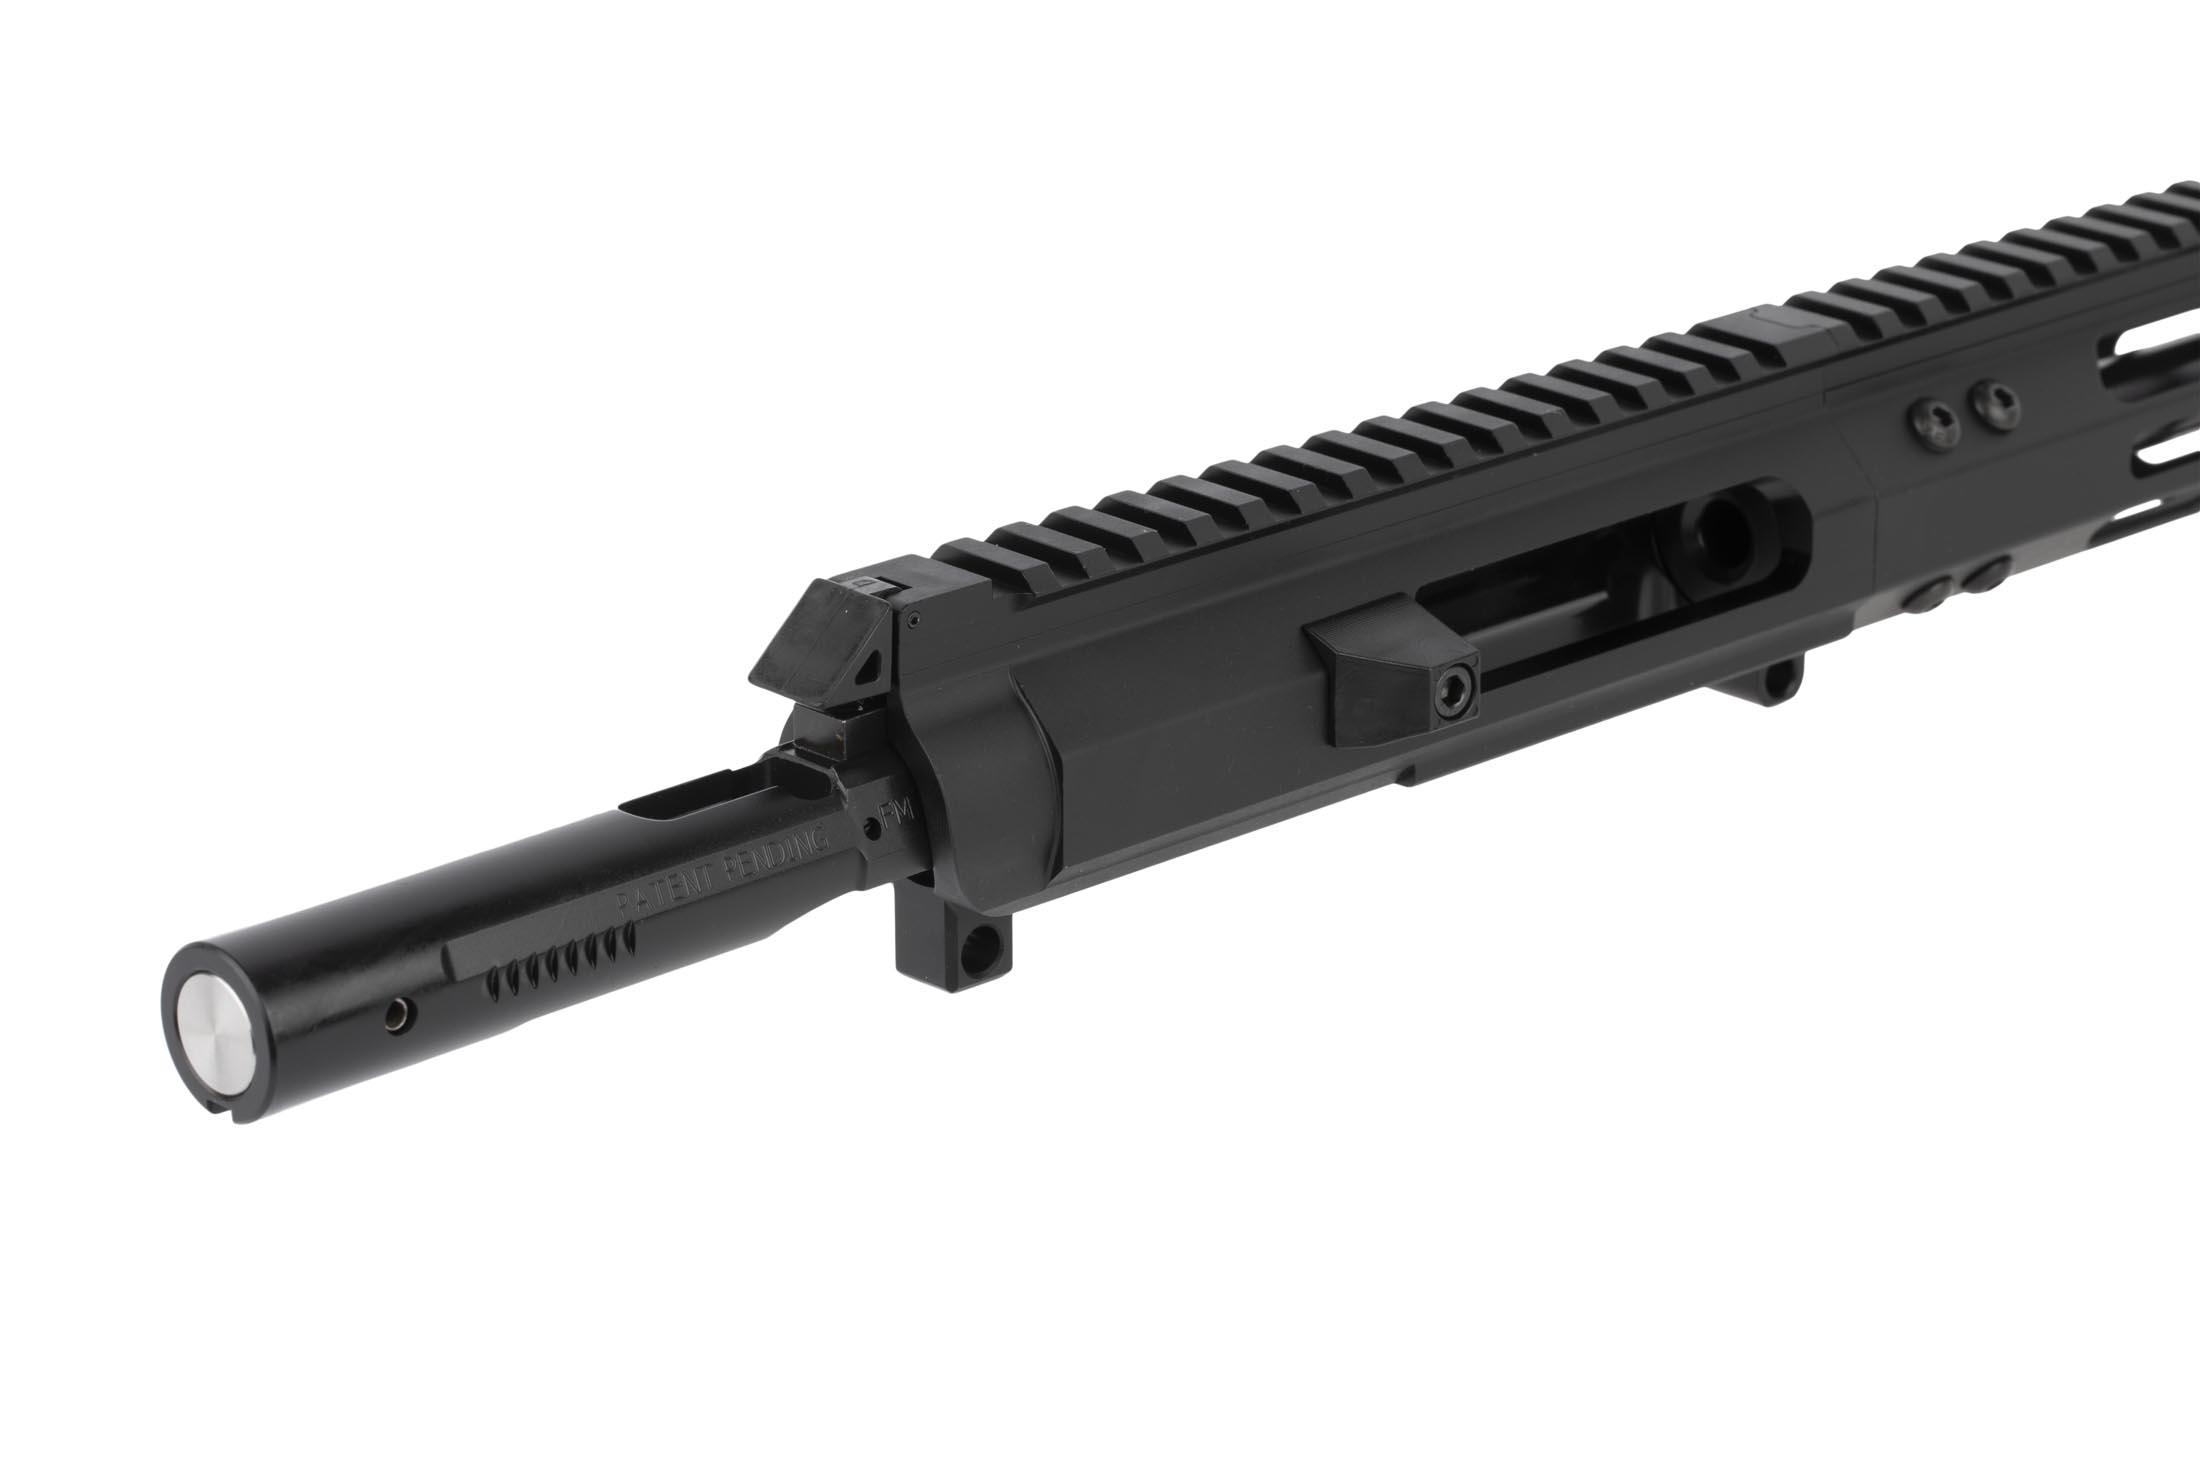 Foxtrot Mike Products Complete 9mm AR Upper 8 5